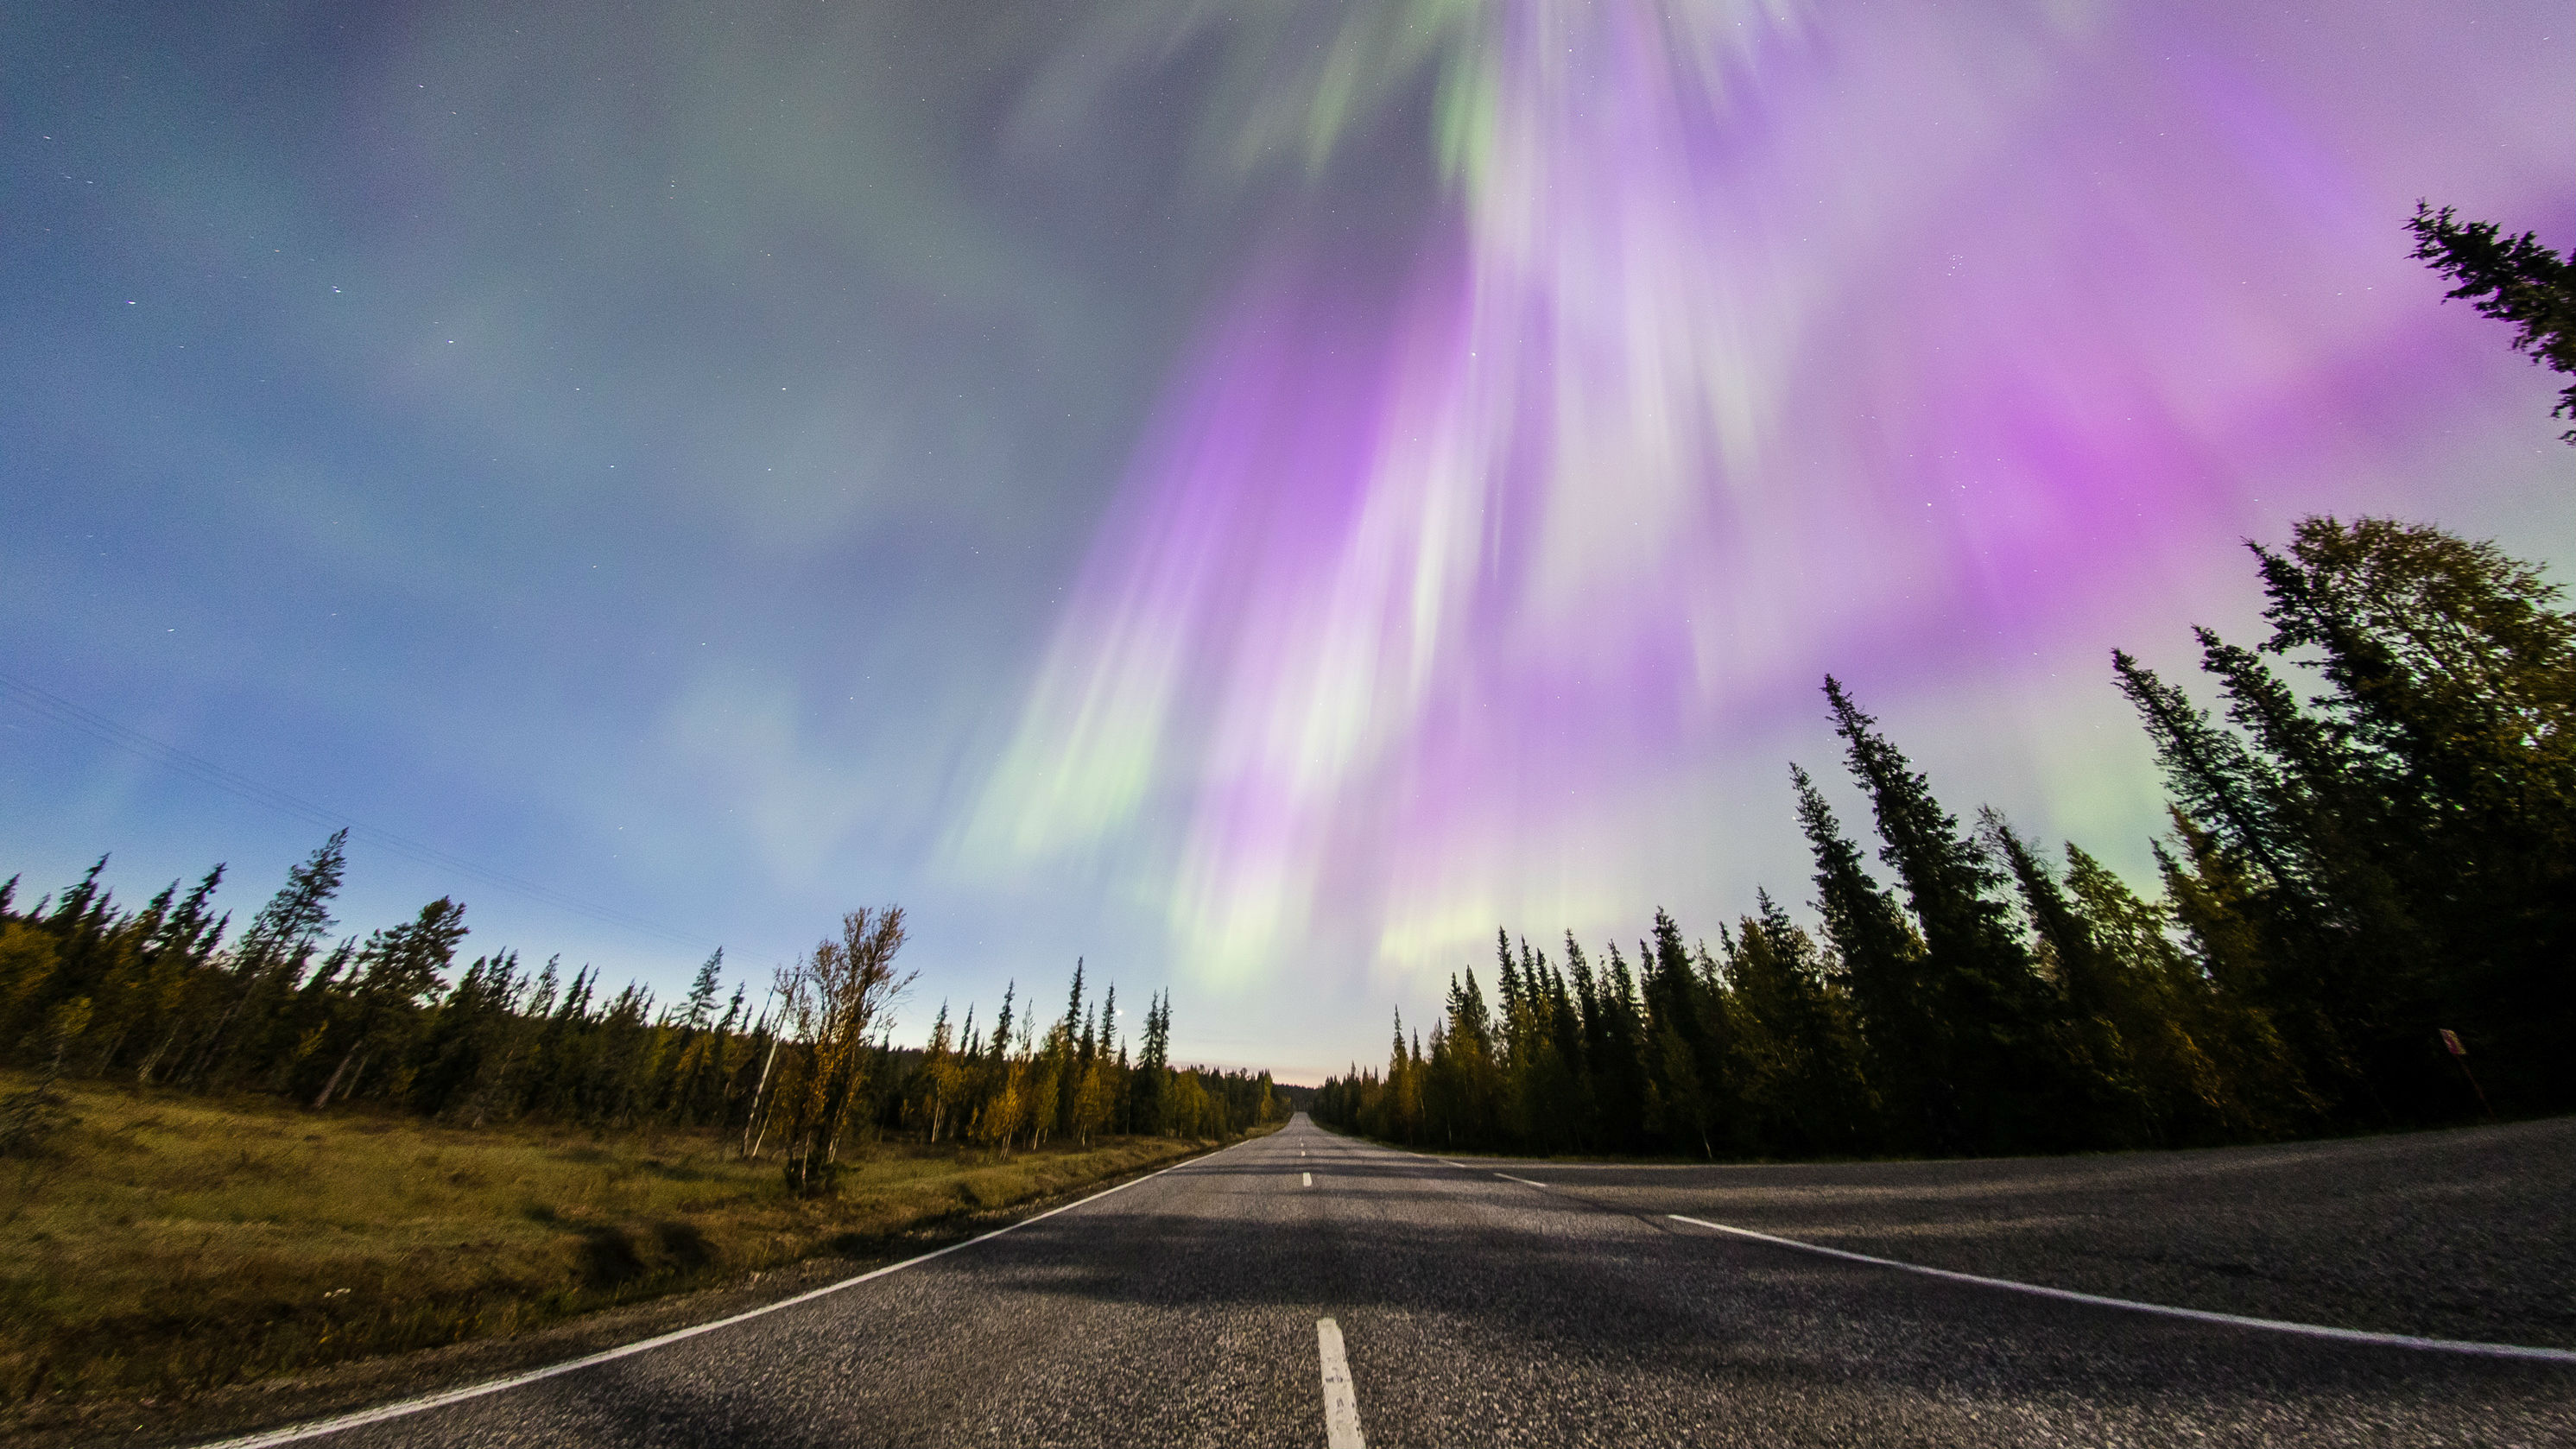 A picture of a road with the northern lights above it.